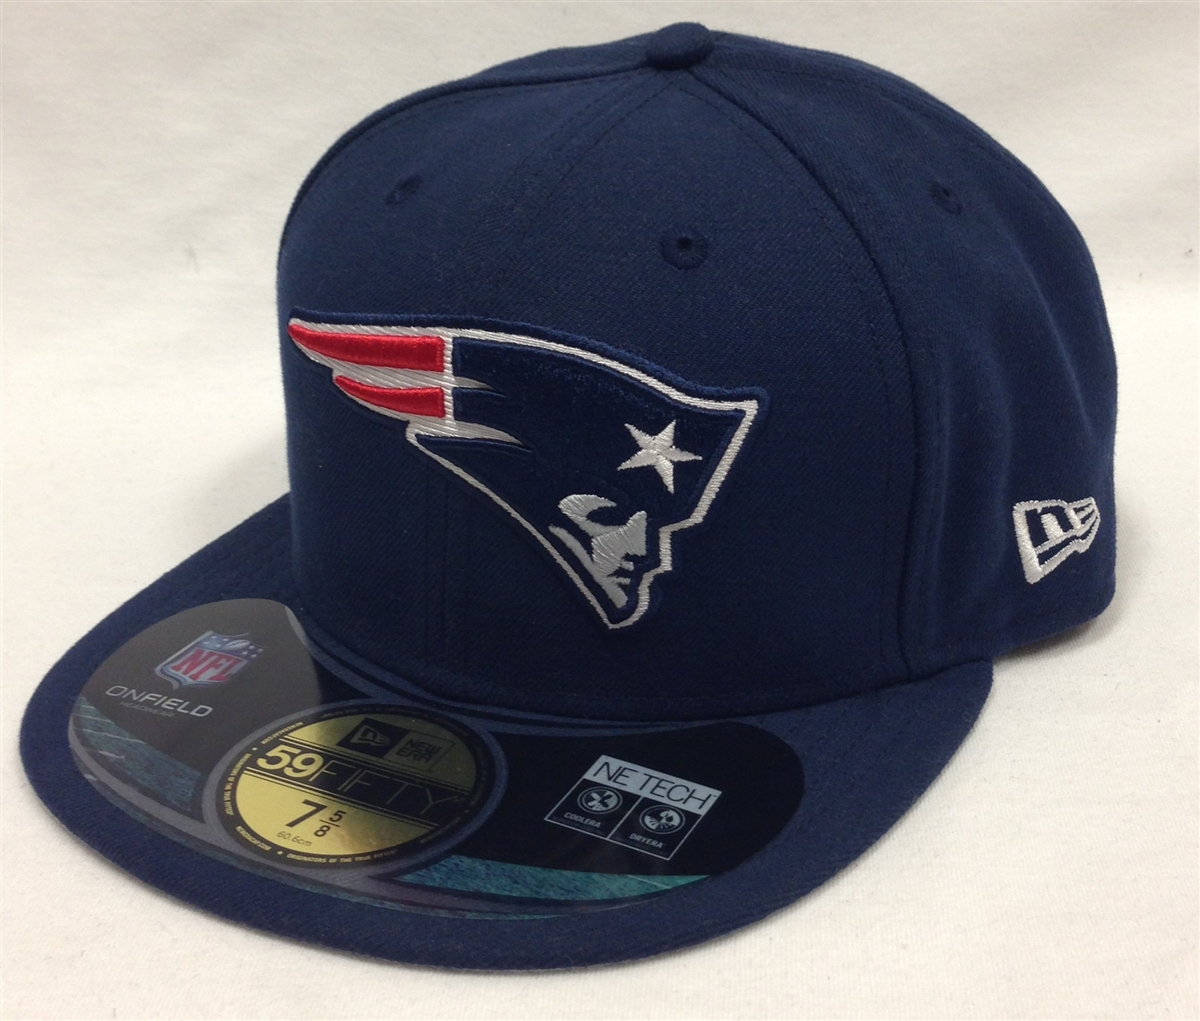 New Era 59Fifty New England Patriots Onfield Navy Fitted Cap 200b9fd1ec4